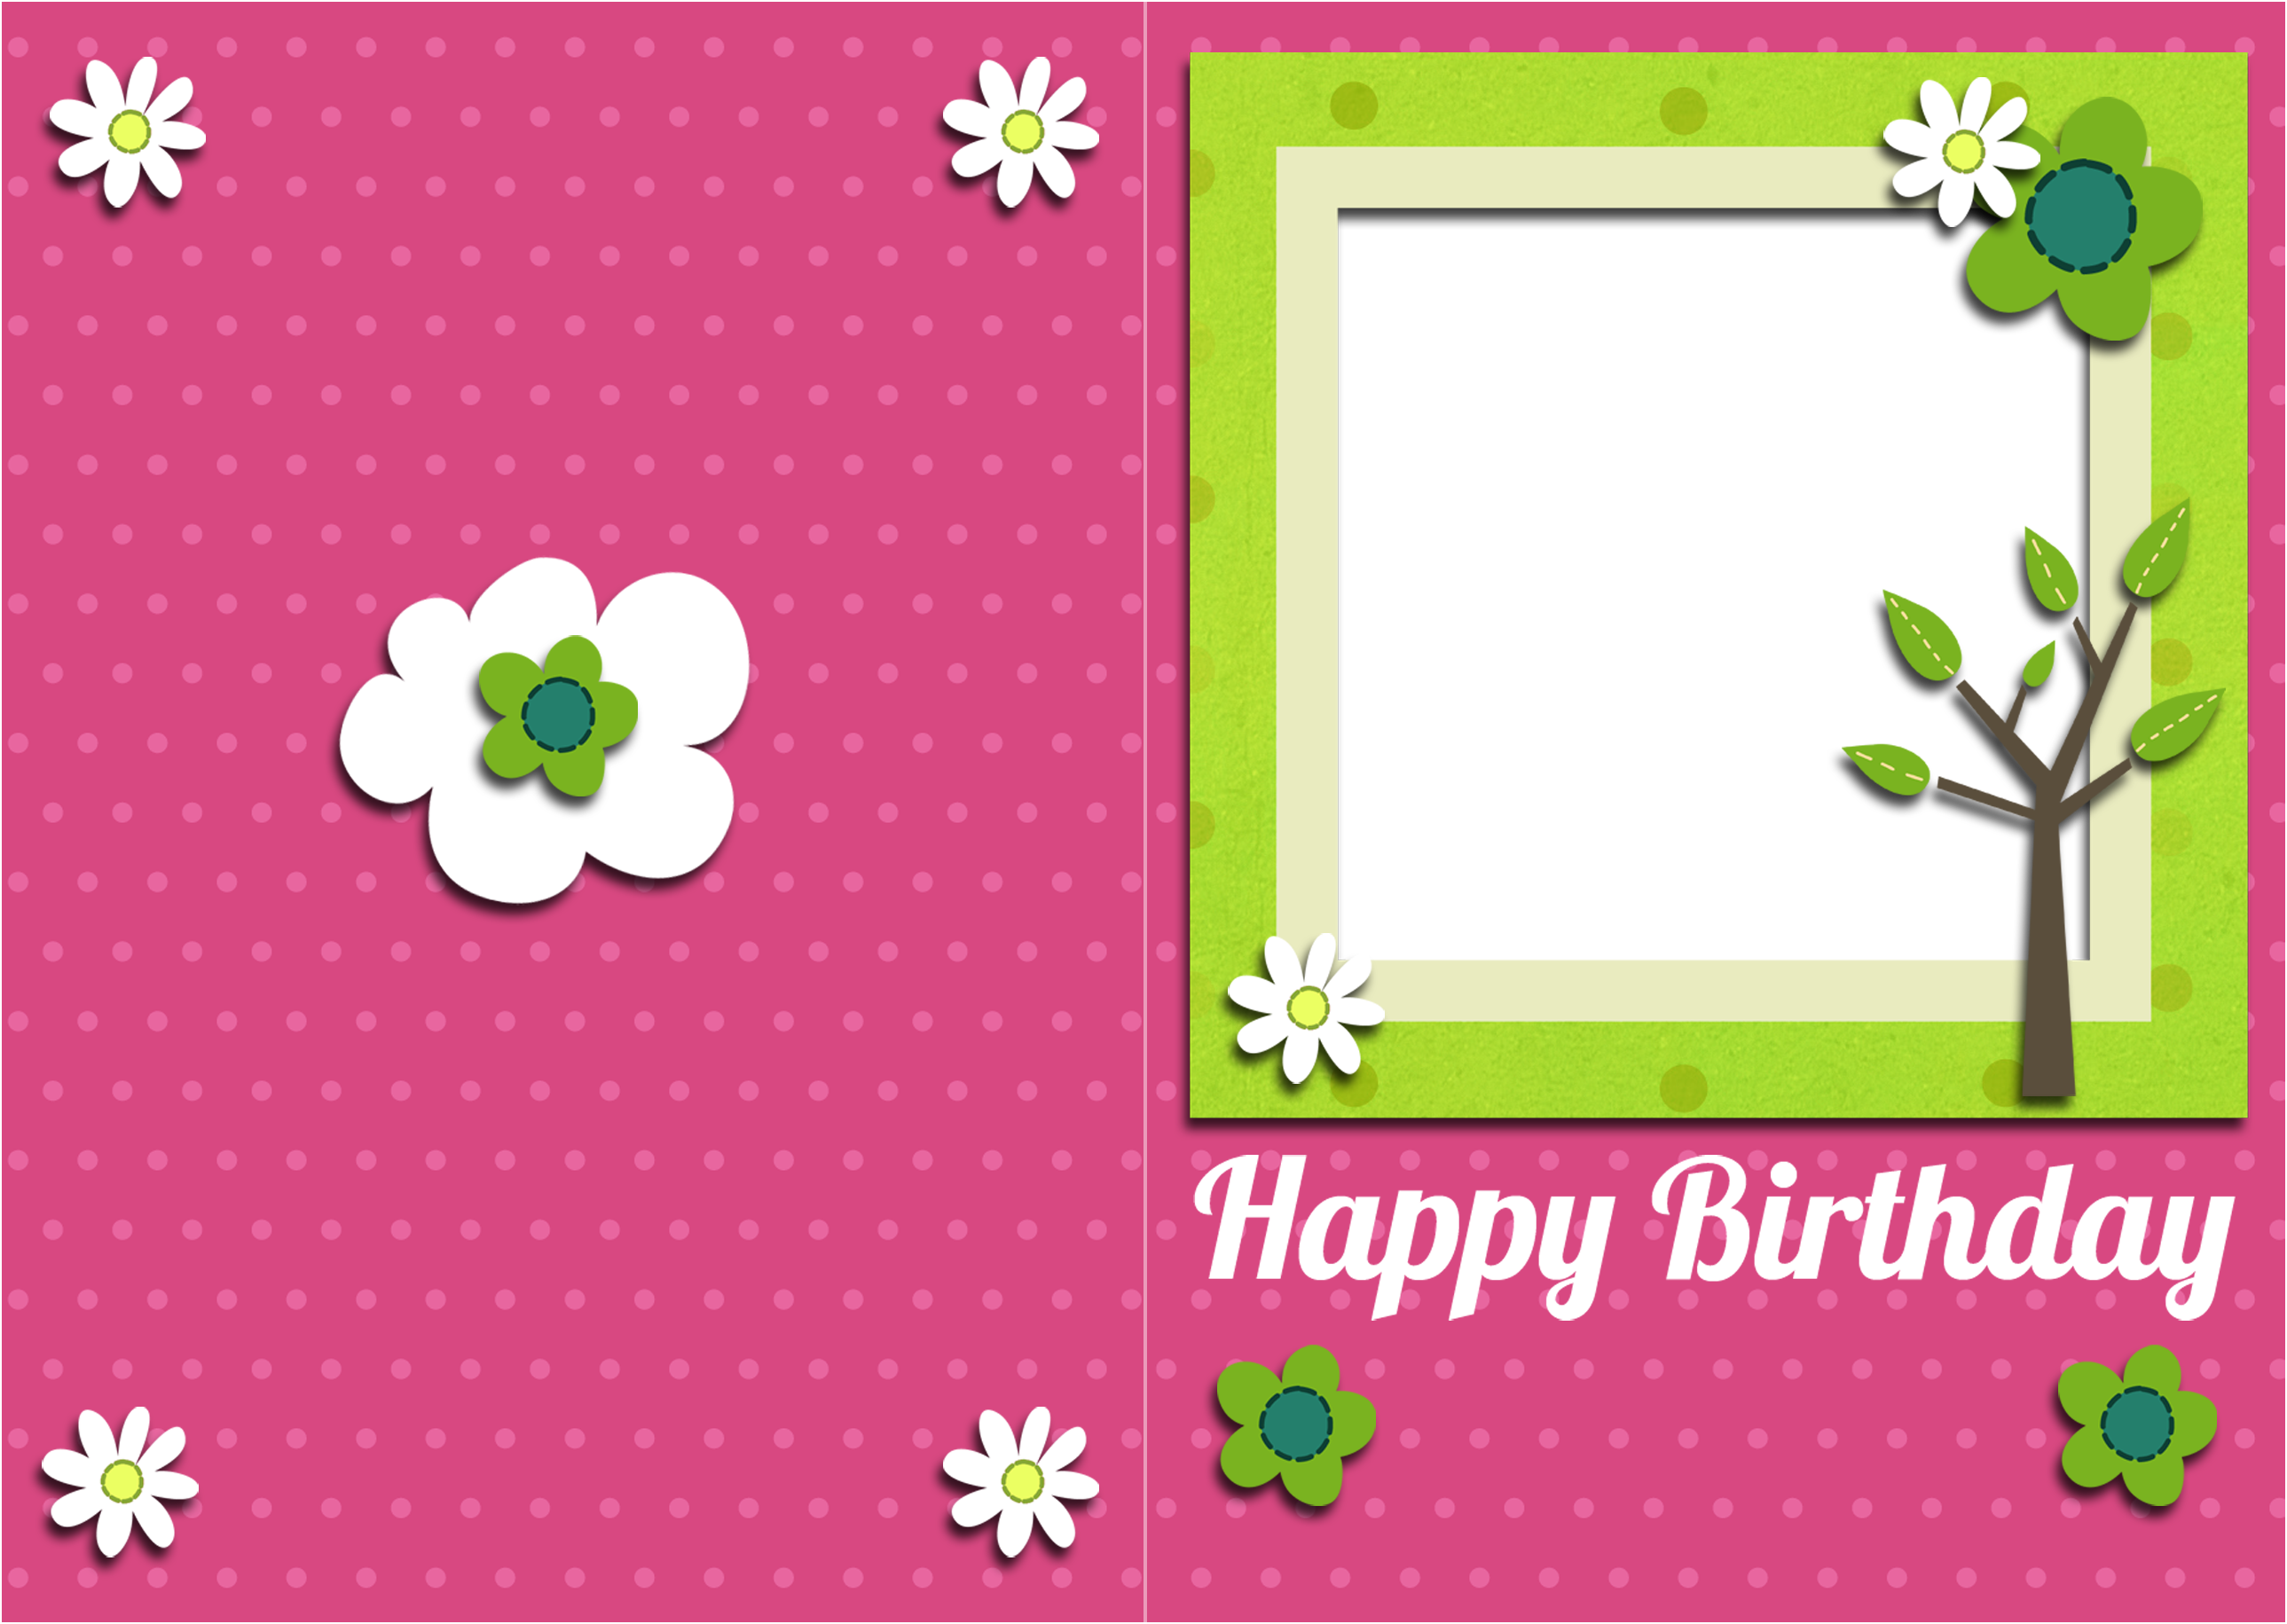 Simple Birthday Cards Printable ~ Free pictures to print printable birthday card and gift tag with space for photo